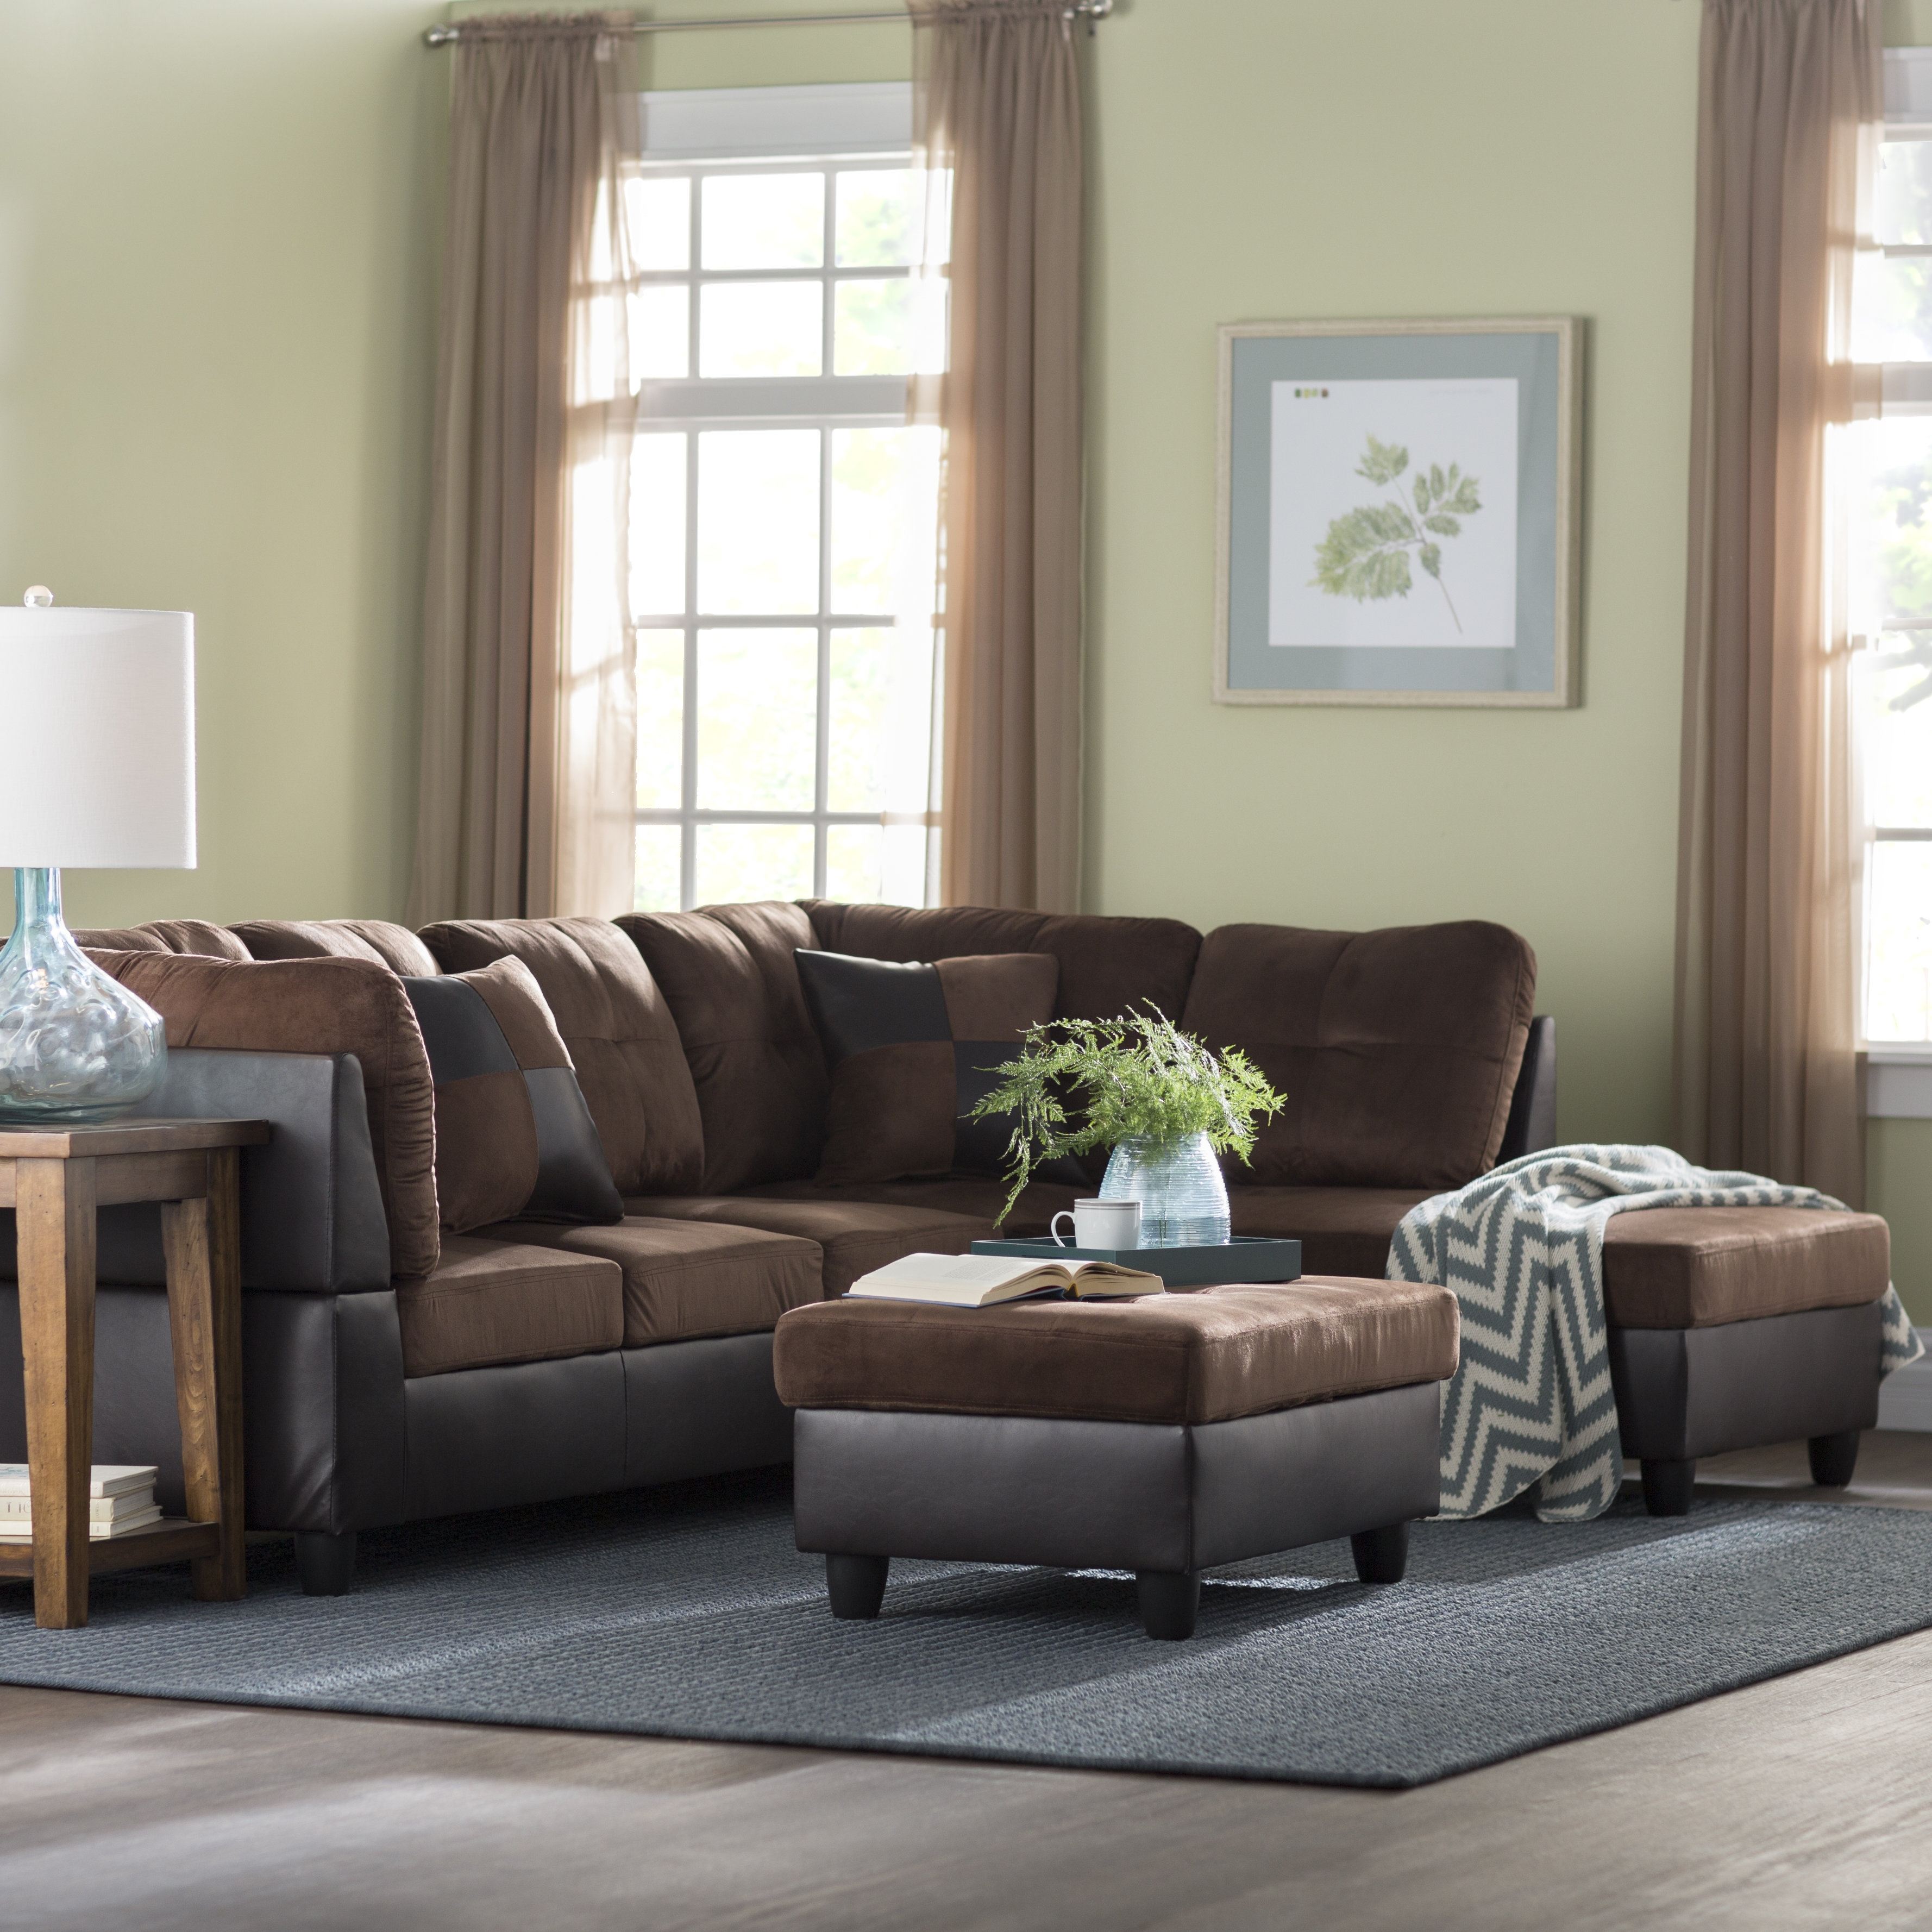 Andover Mills Russ Sectional With Ottoman & Reviews   Wayfair Intended For Blaine 4 Piece Sectionals (Image 1 of 25)